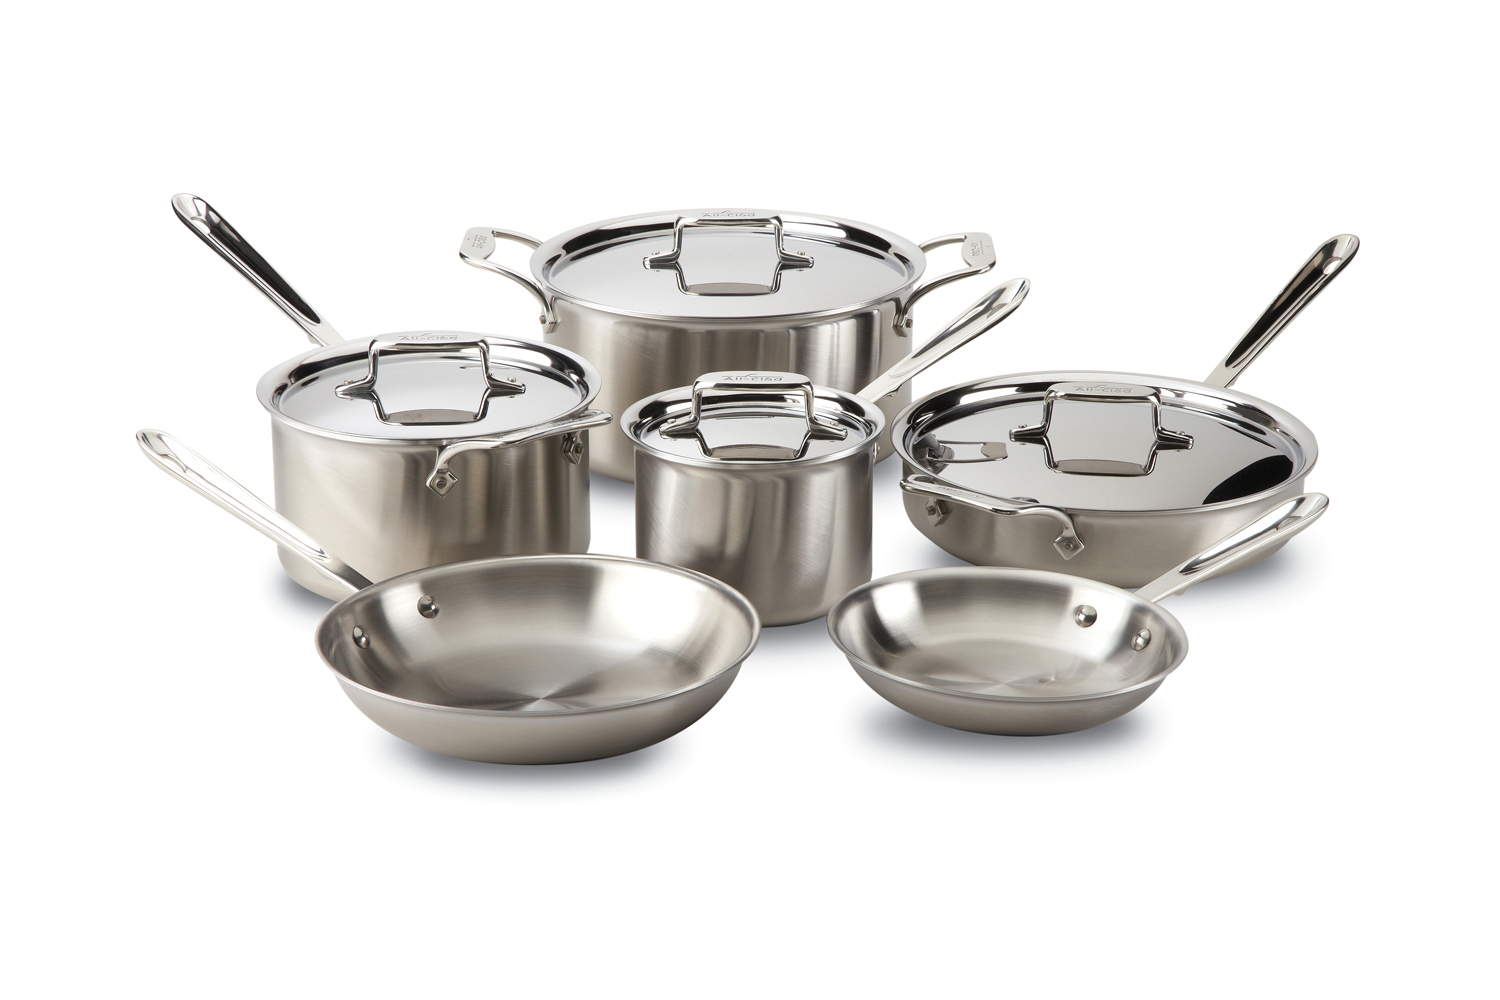 All-Clad d5 Brushed Stainless 10 Piece Cookware Set (BD005710-R) by All-Clad